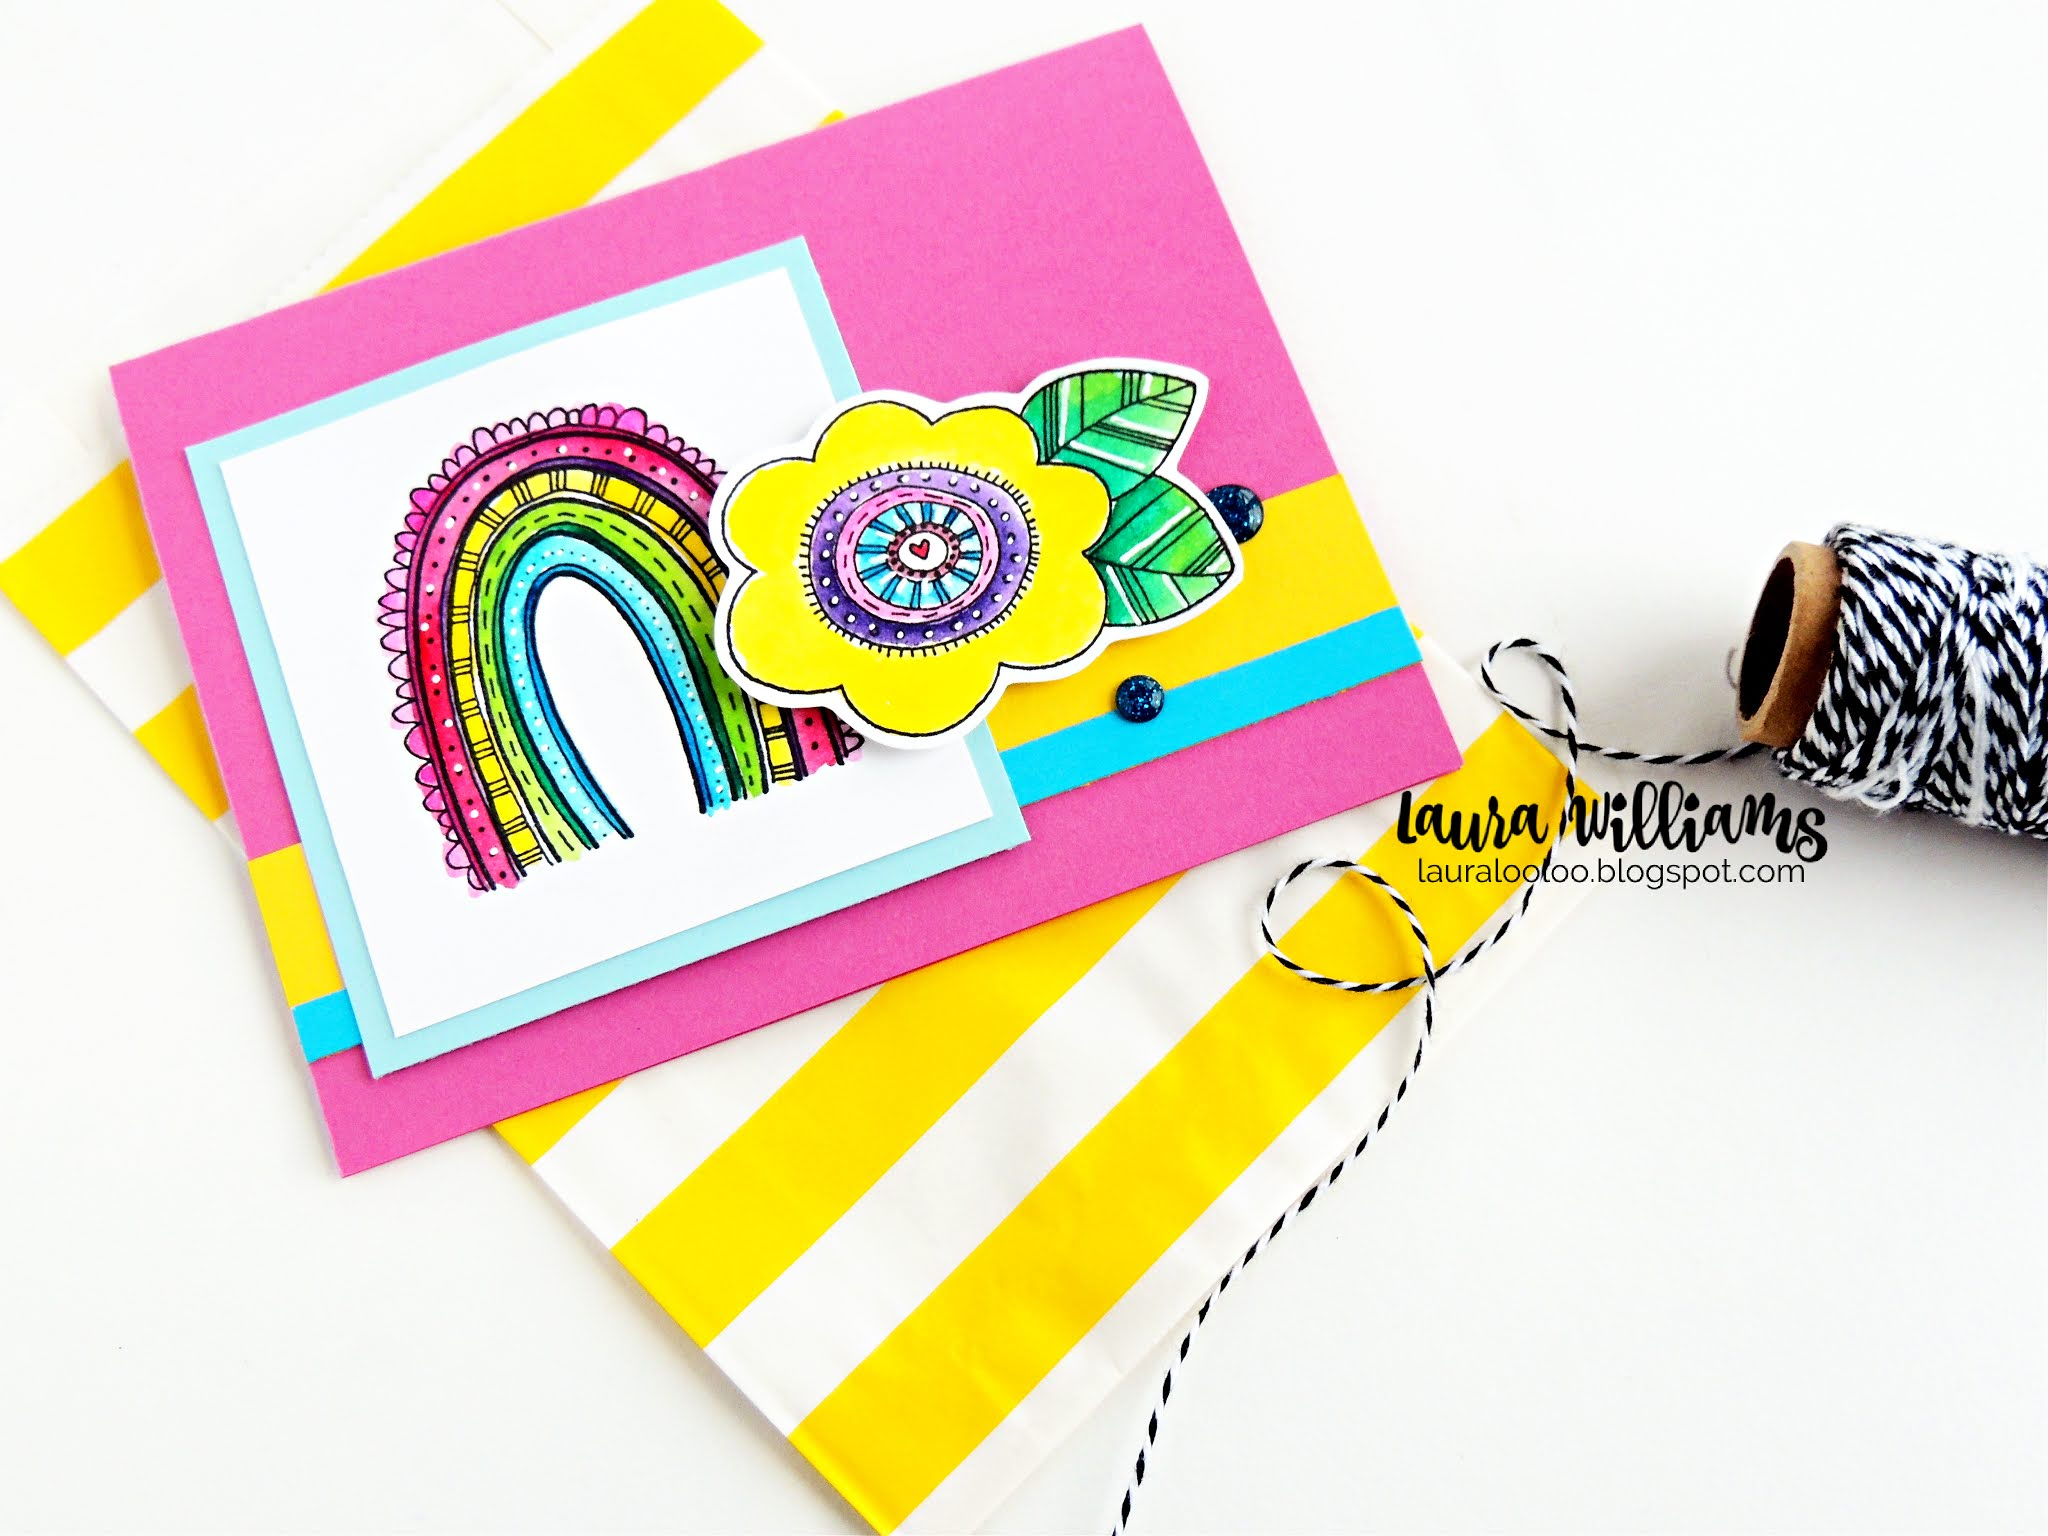 Make handmade cards with rainbows with stamps from Impression Obsession! Visit my blog to see more bright and shiny card ideas with stamping and die cutting.